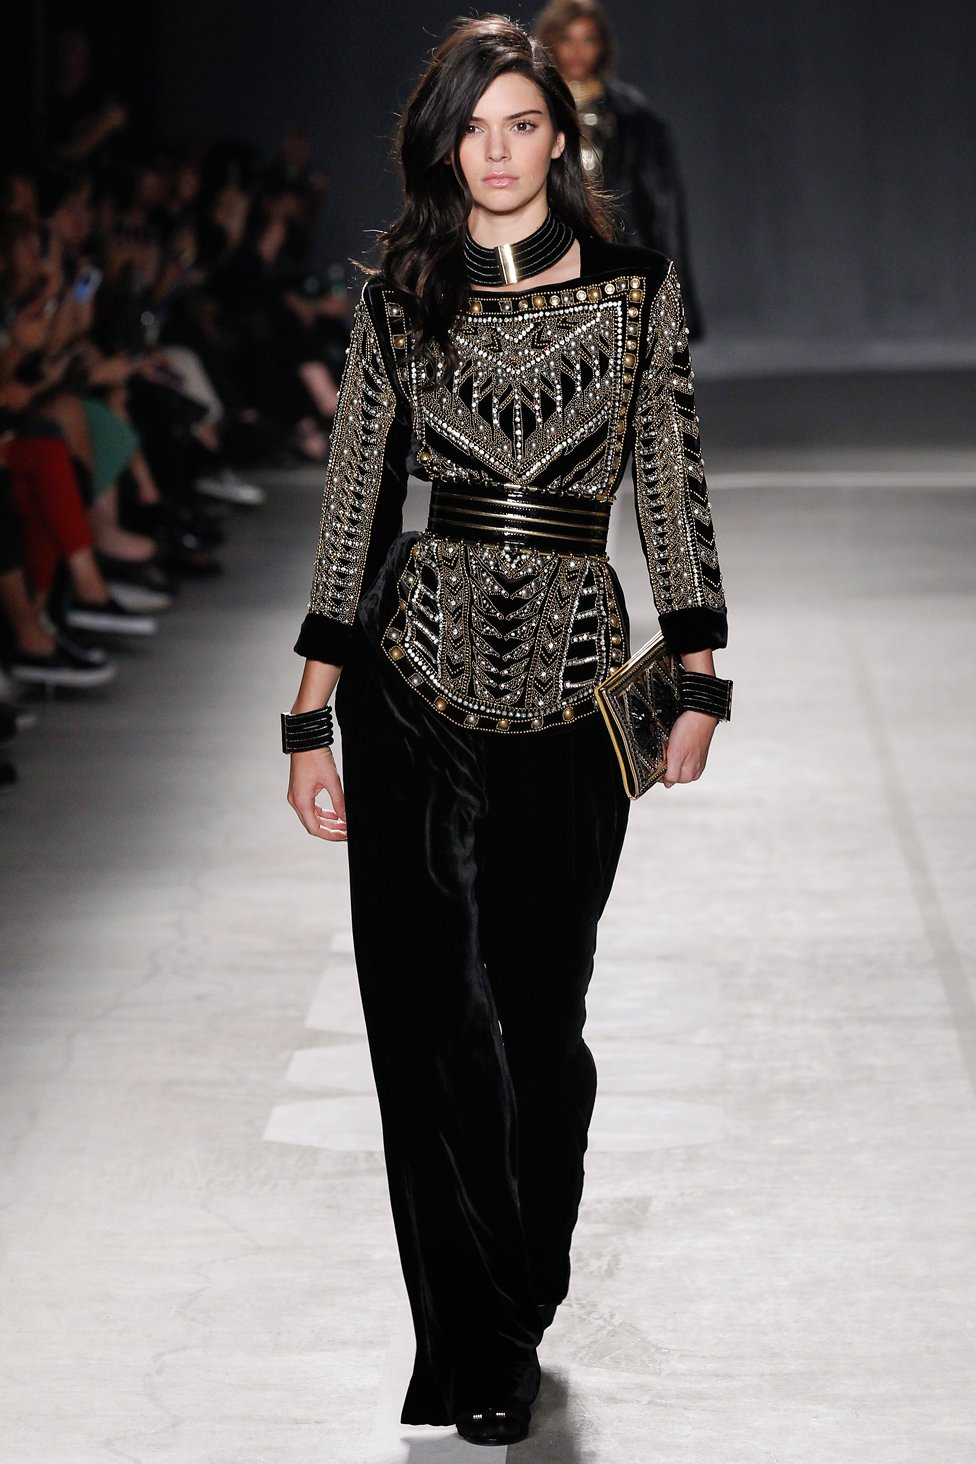 h-and-m-balmain-runway-fall-2016-01.jpg